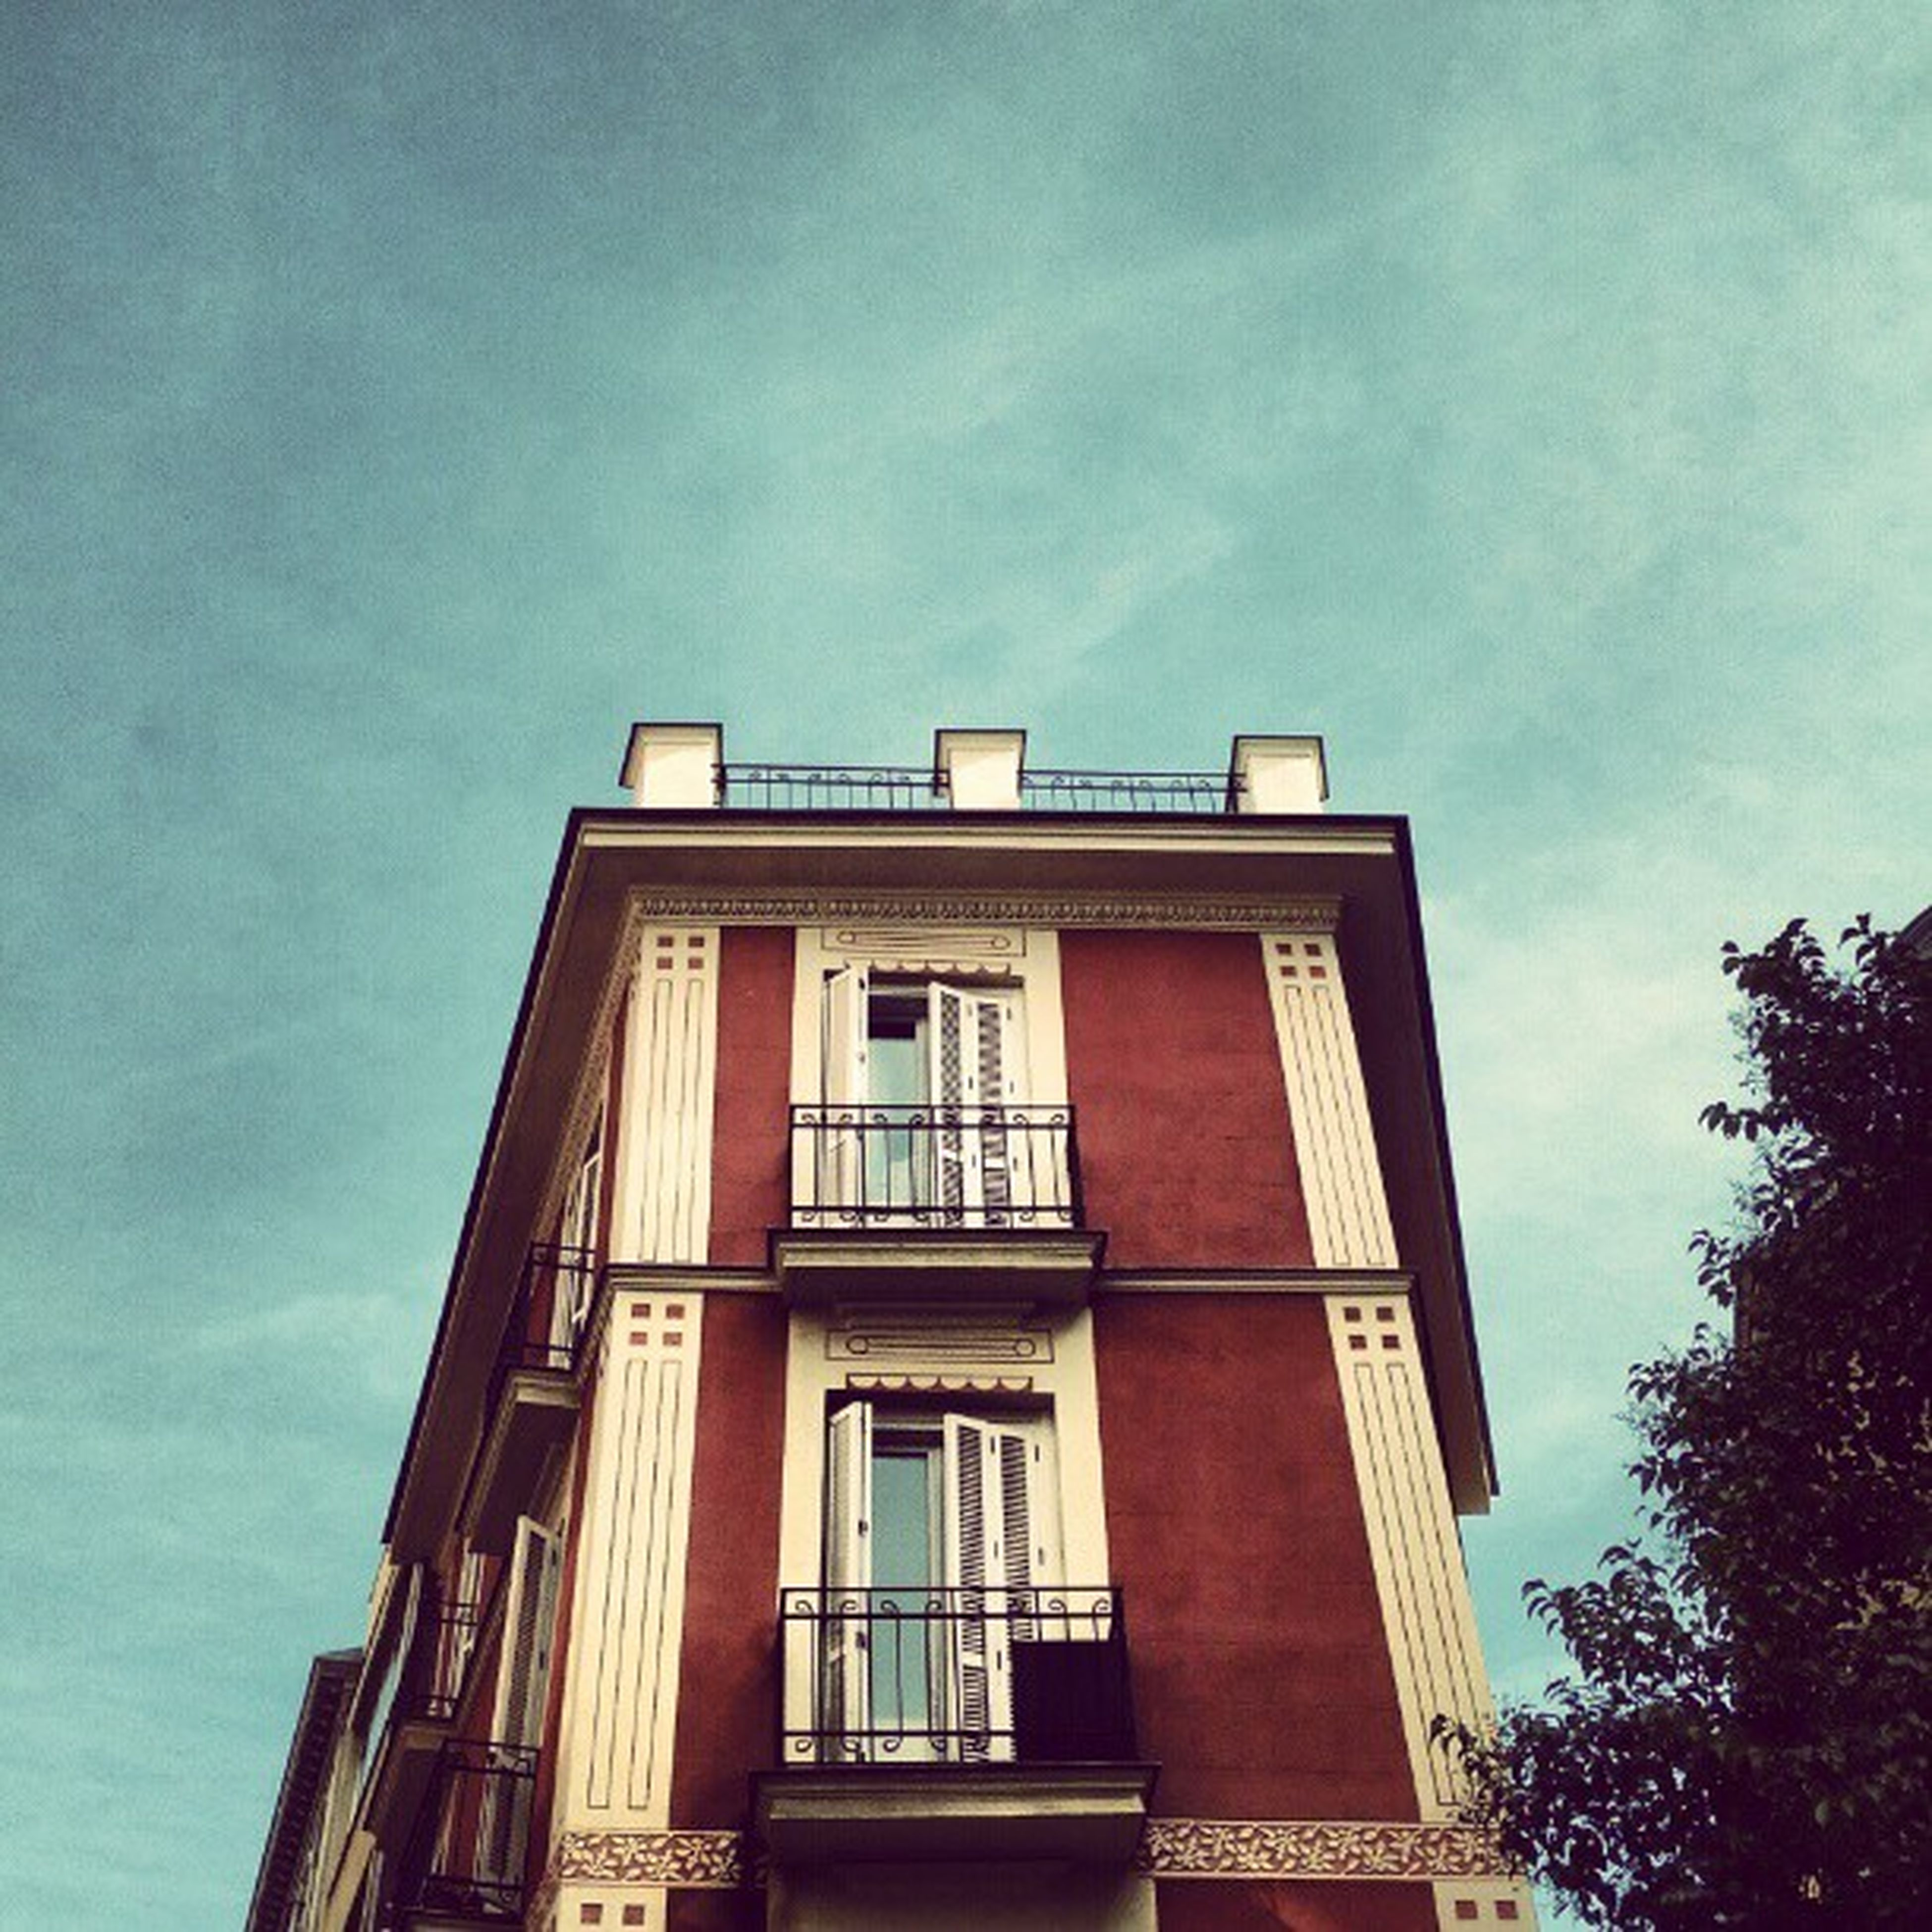 architecture, built structure, building exterior, low angle view, window, sky, building, residential building, residential structure, day, outdoors, cloud - sky, house, no people, city, cloud, balcony, tree, apartment, high section